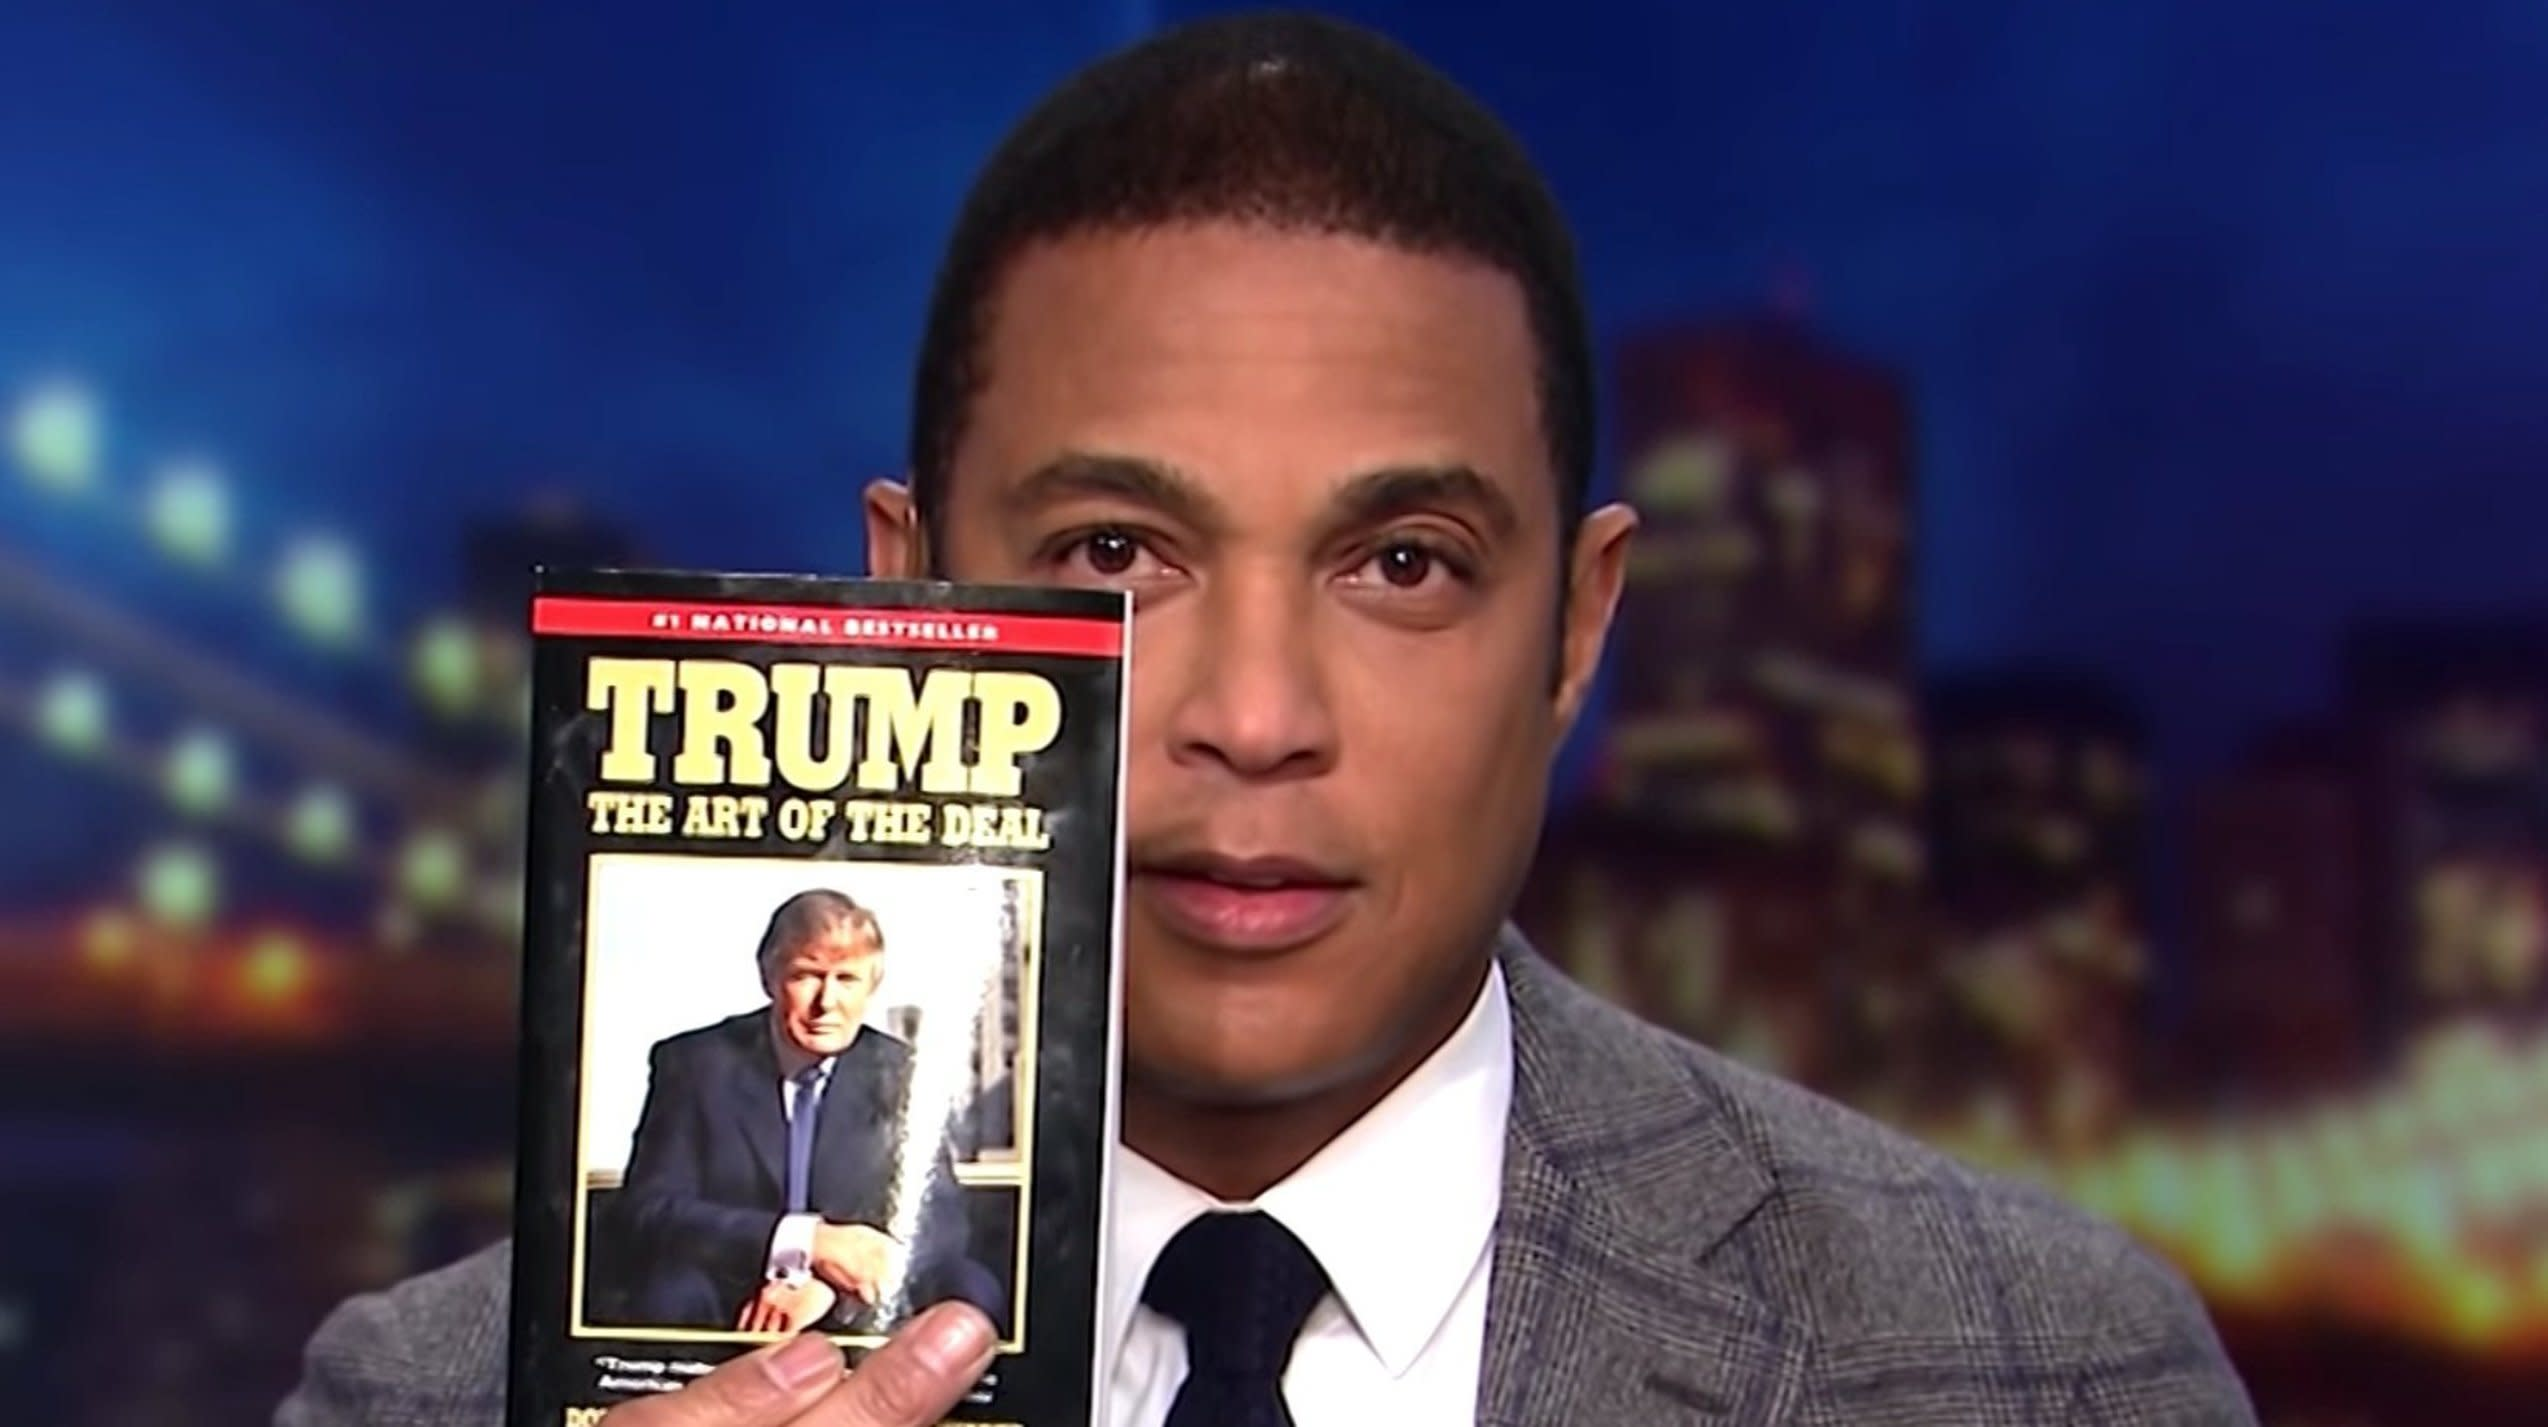 Don Lemon Trolls Trump With Negotiating Tips From 'The Art Of The Deal'